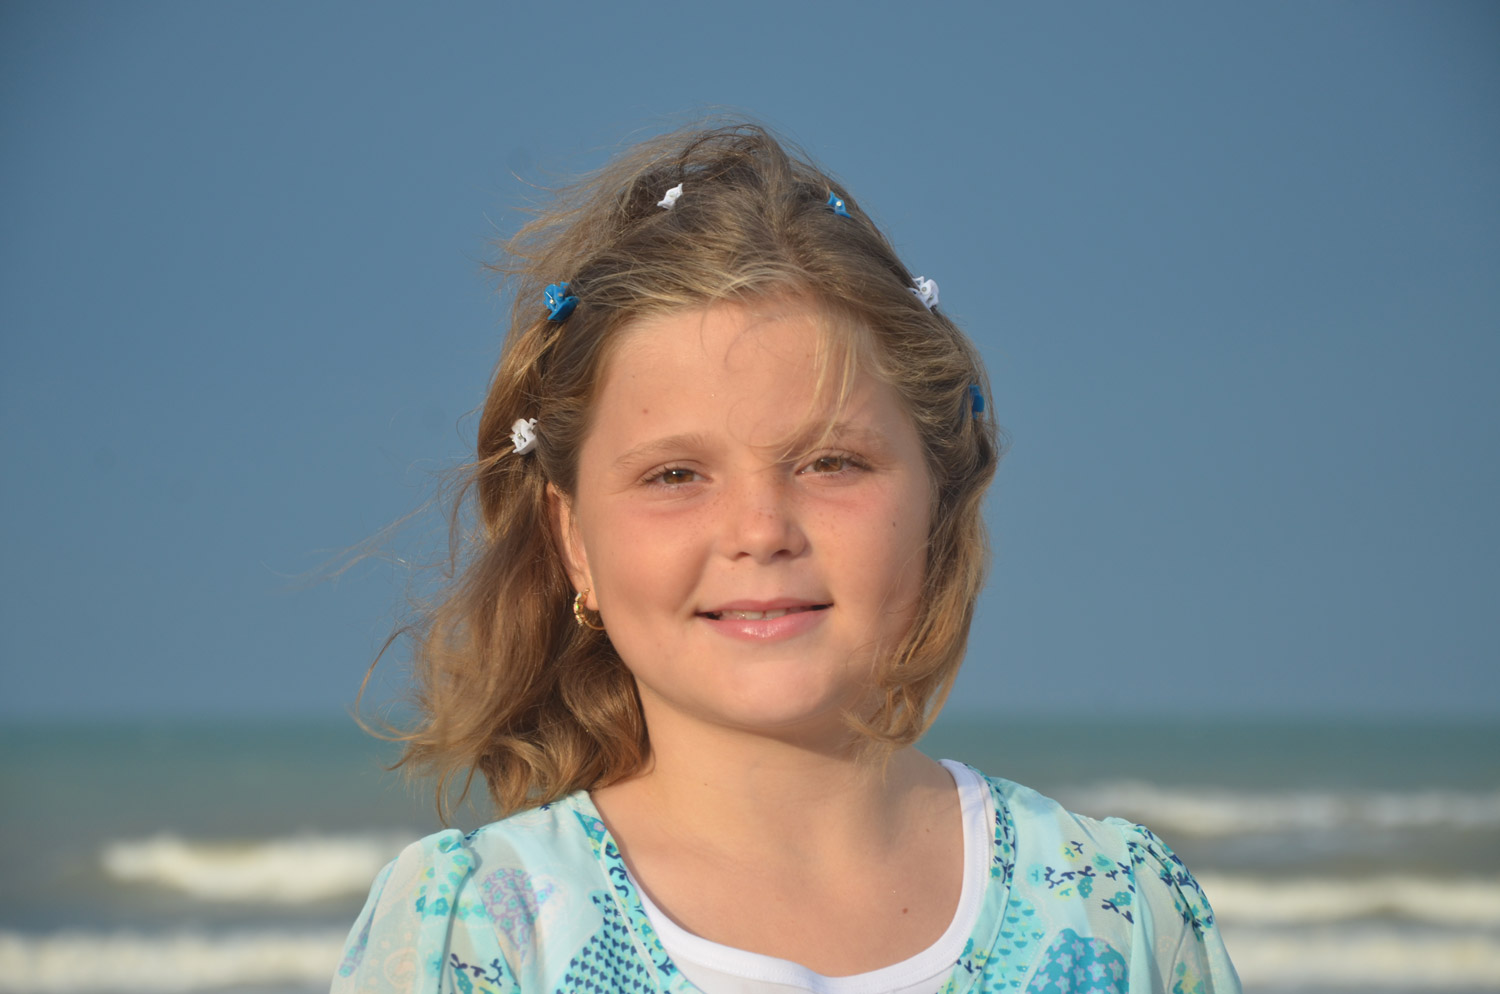 Amber Troha -Miss Flagler County 2010 Contestant - Ages 16